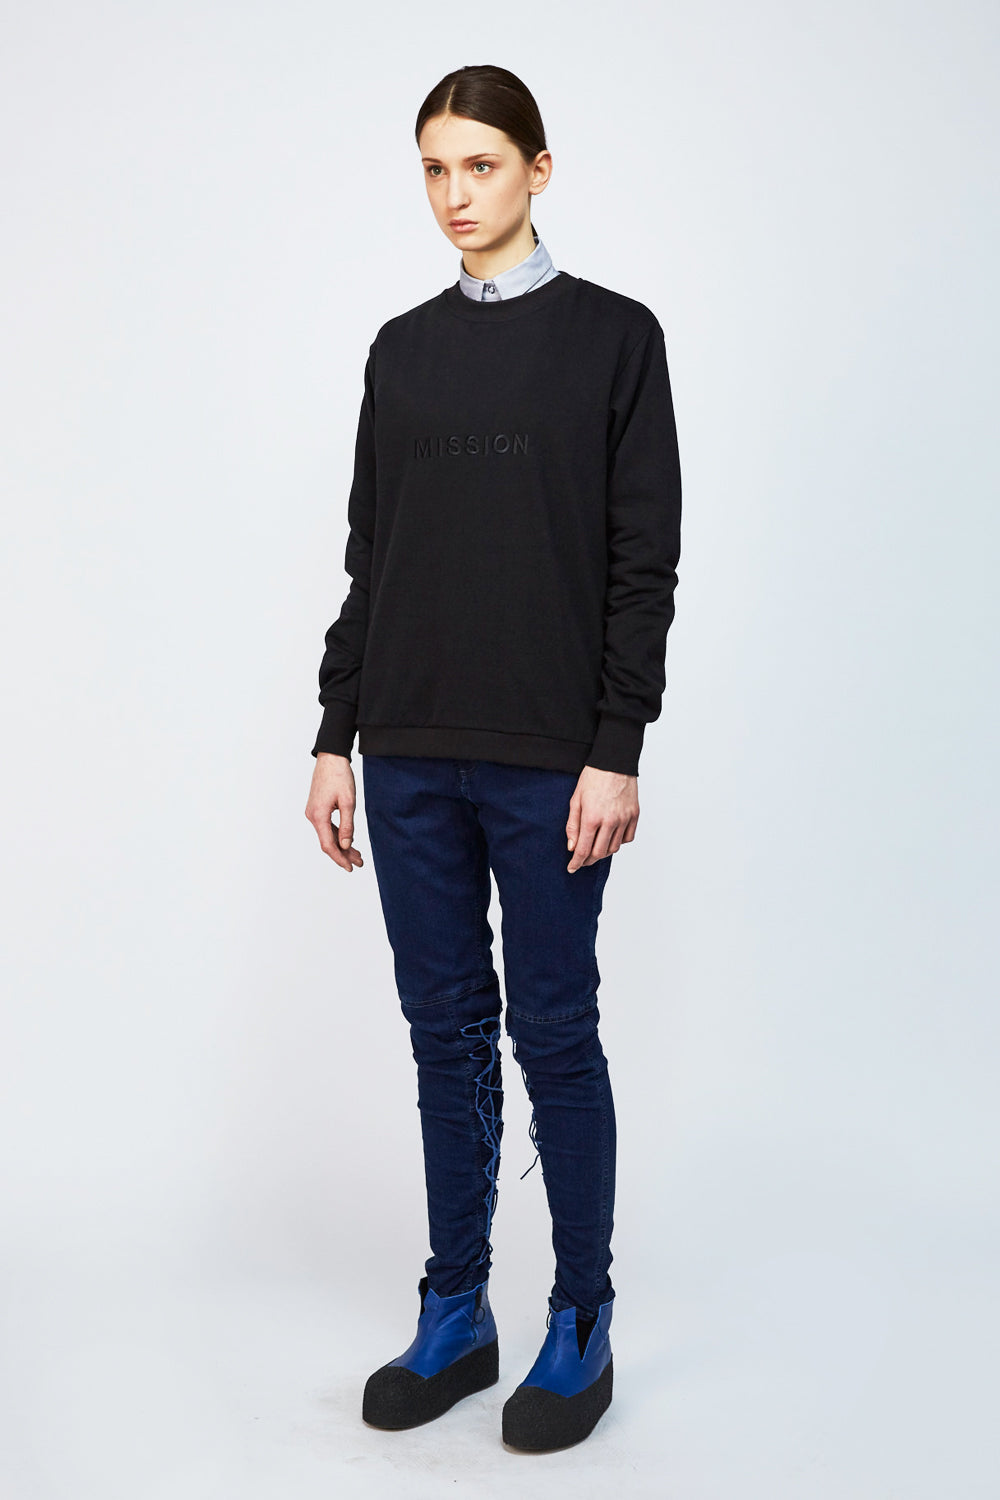 Unisex Sweater MISSION - One Wolf